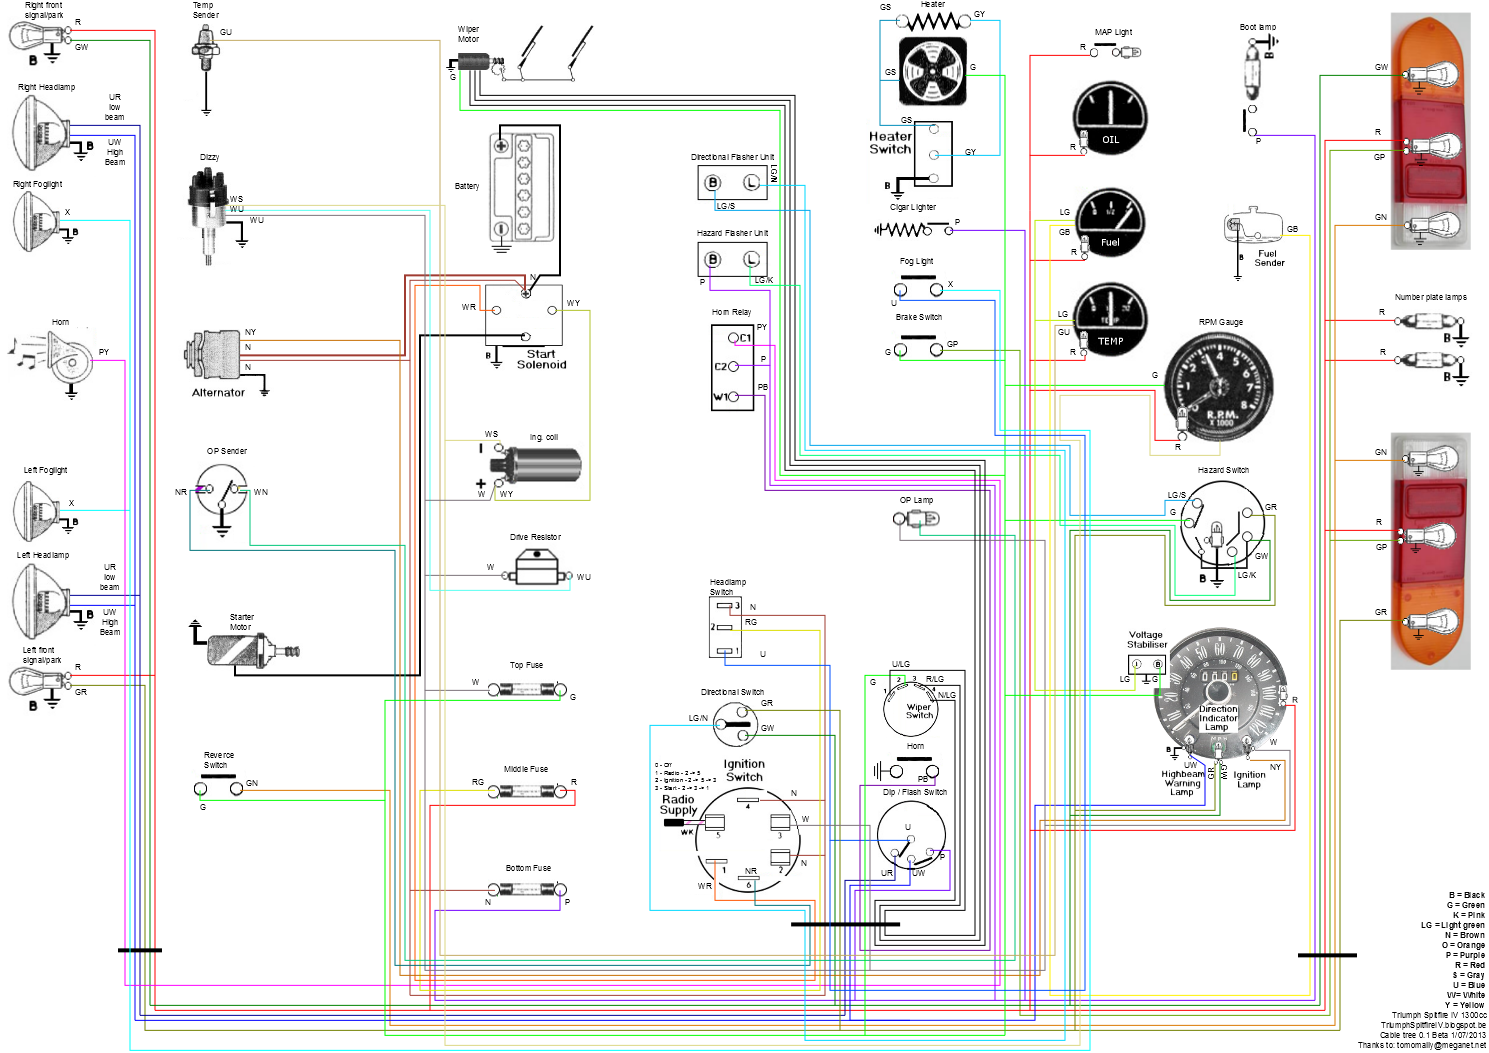 Spitfire Wiring Diagram on spitfire interior diagram, triumph gt6 electrical diagram, spitfire ignition system,